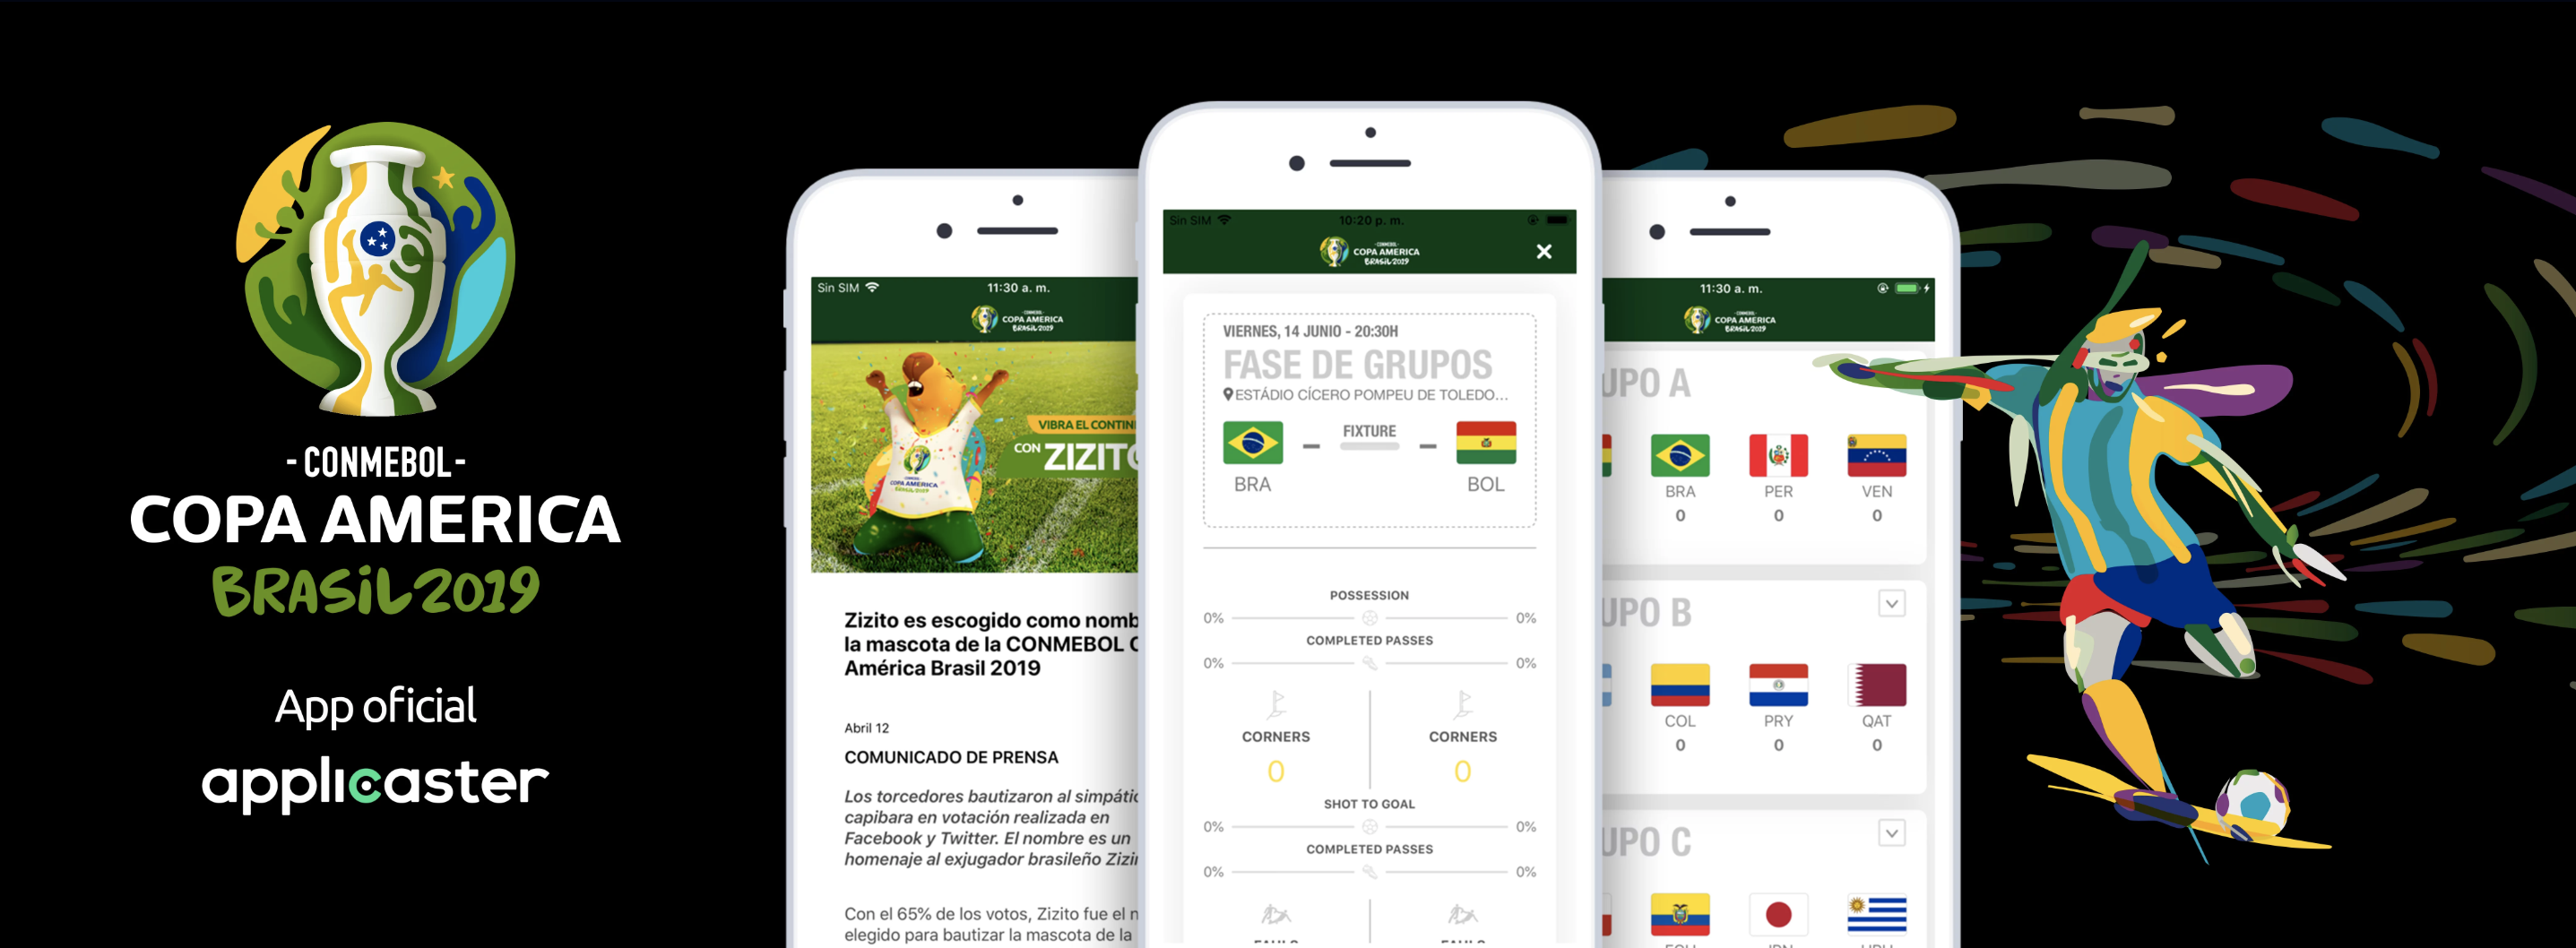 Applicaster Powers CONMEBOL Copa America 2019 Official App and Online Fan Experience